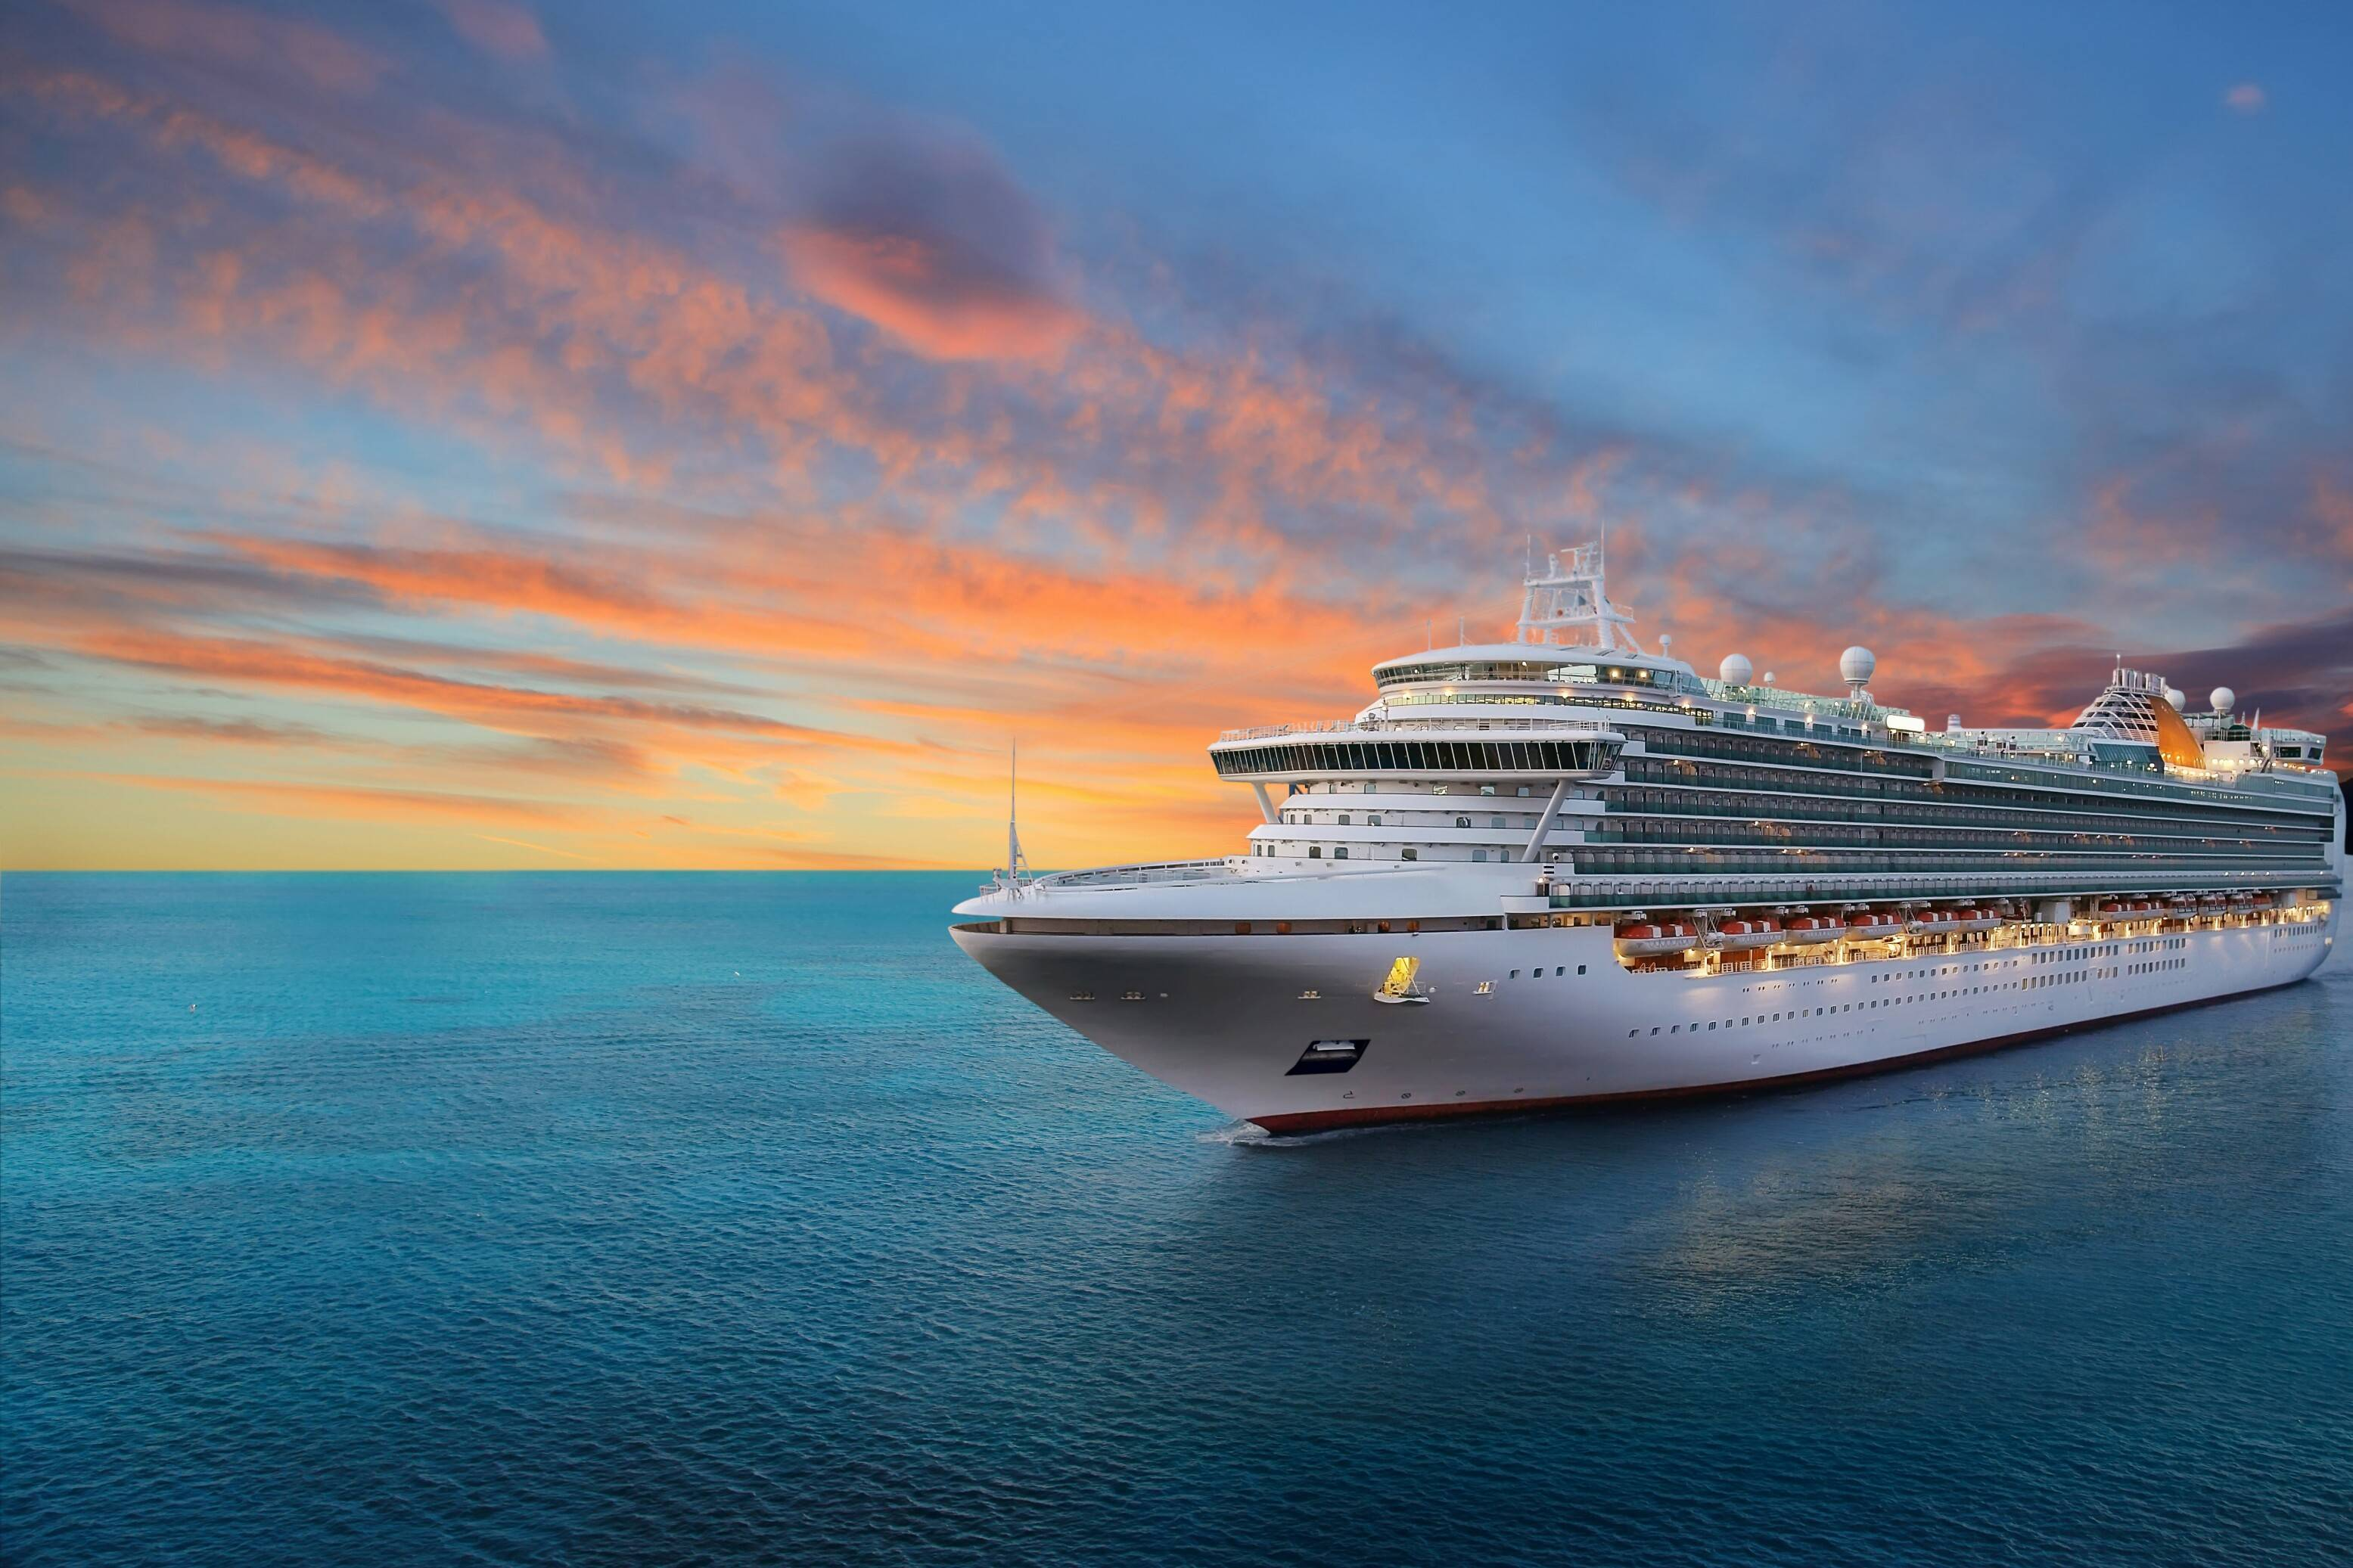 Carnival Crusie (NYSE: CCL) and Royal Caribbean (NYSE:RCL) stock forecast for 2021